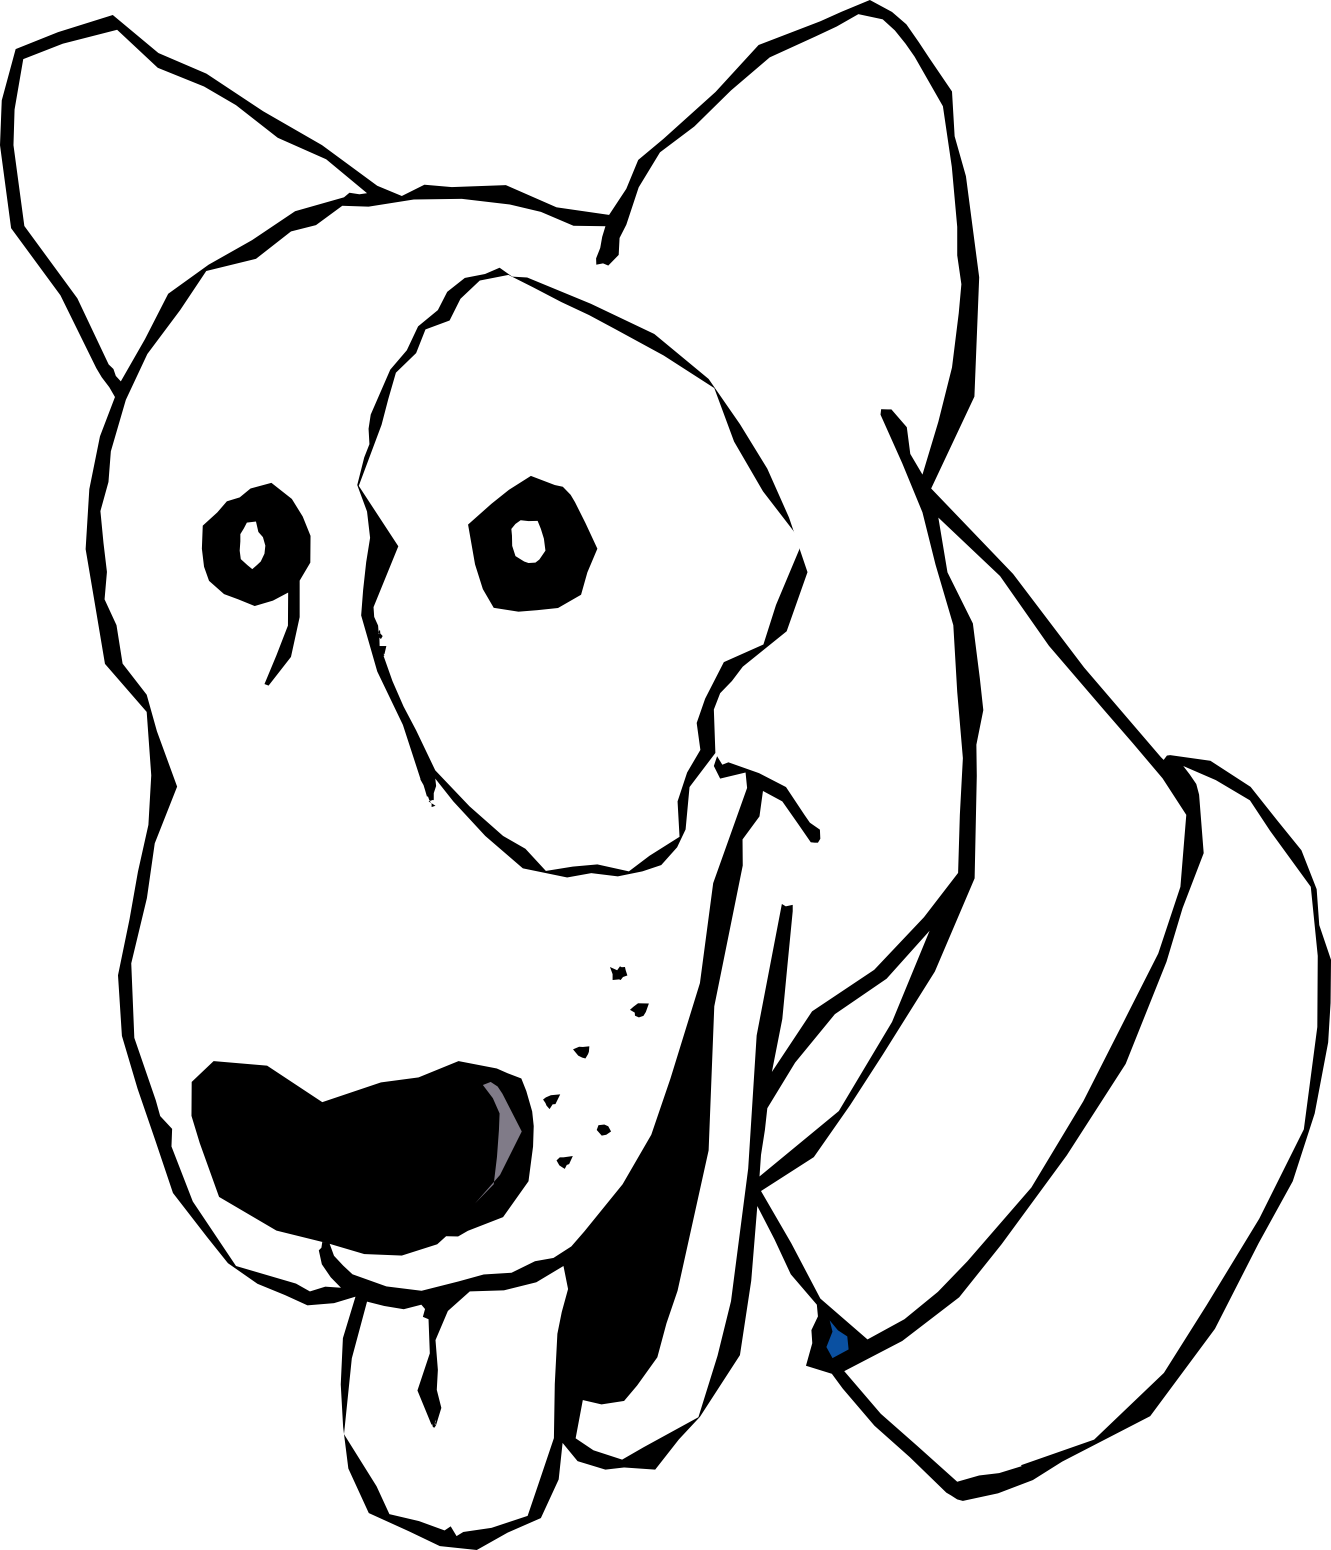 Free hound dog clipart jpg royalty free stock Free Black And White Dog Cartoon, Download Free Clip Art, Free Clip ... jpg royalty free stock